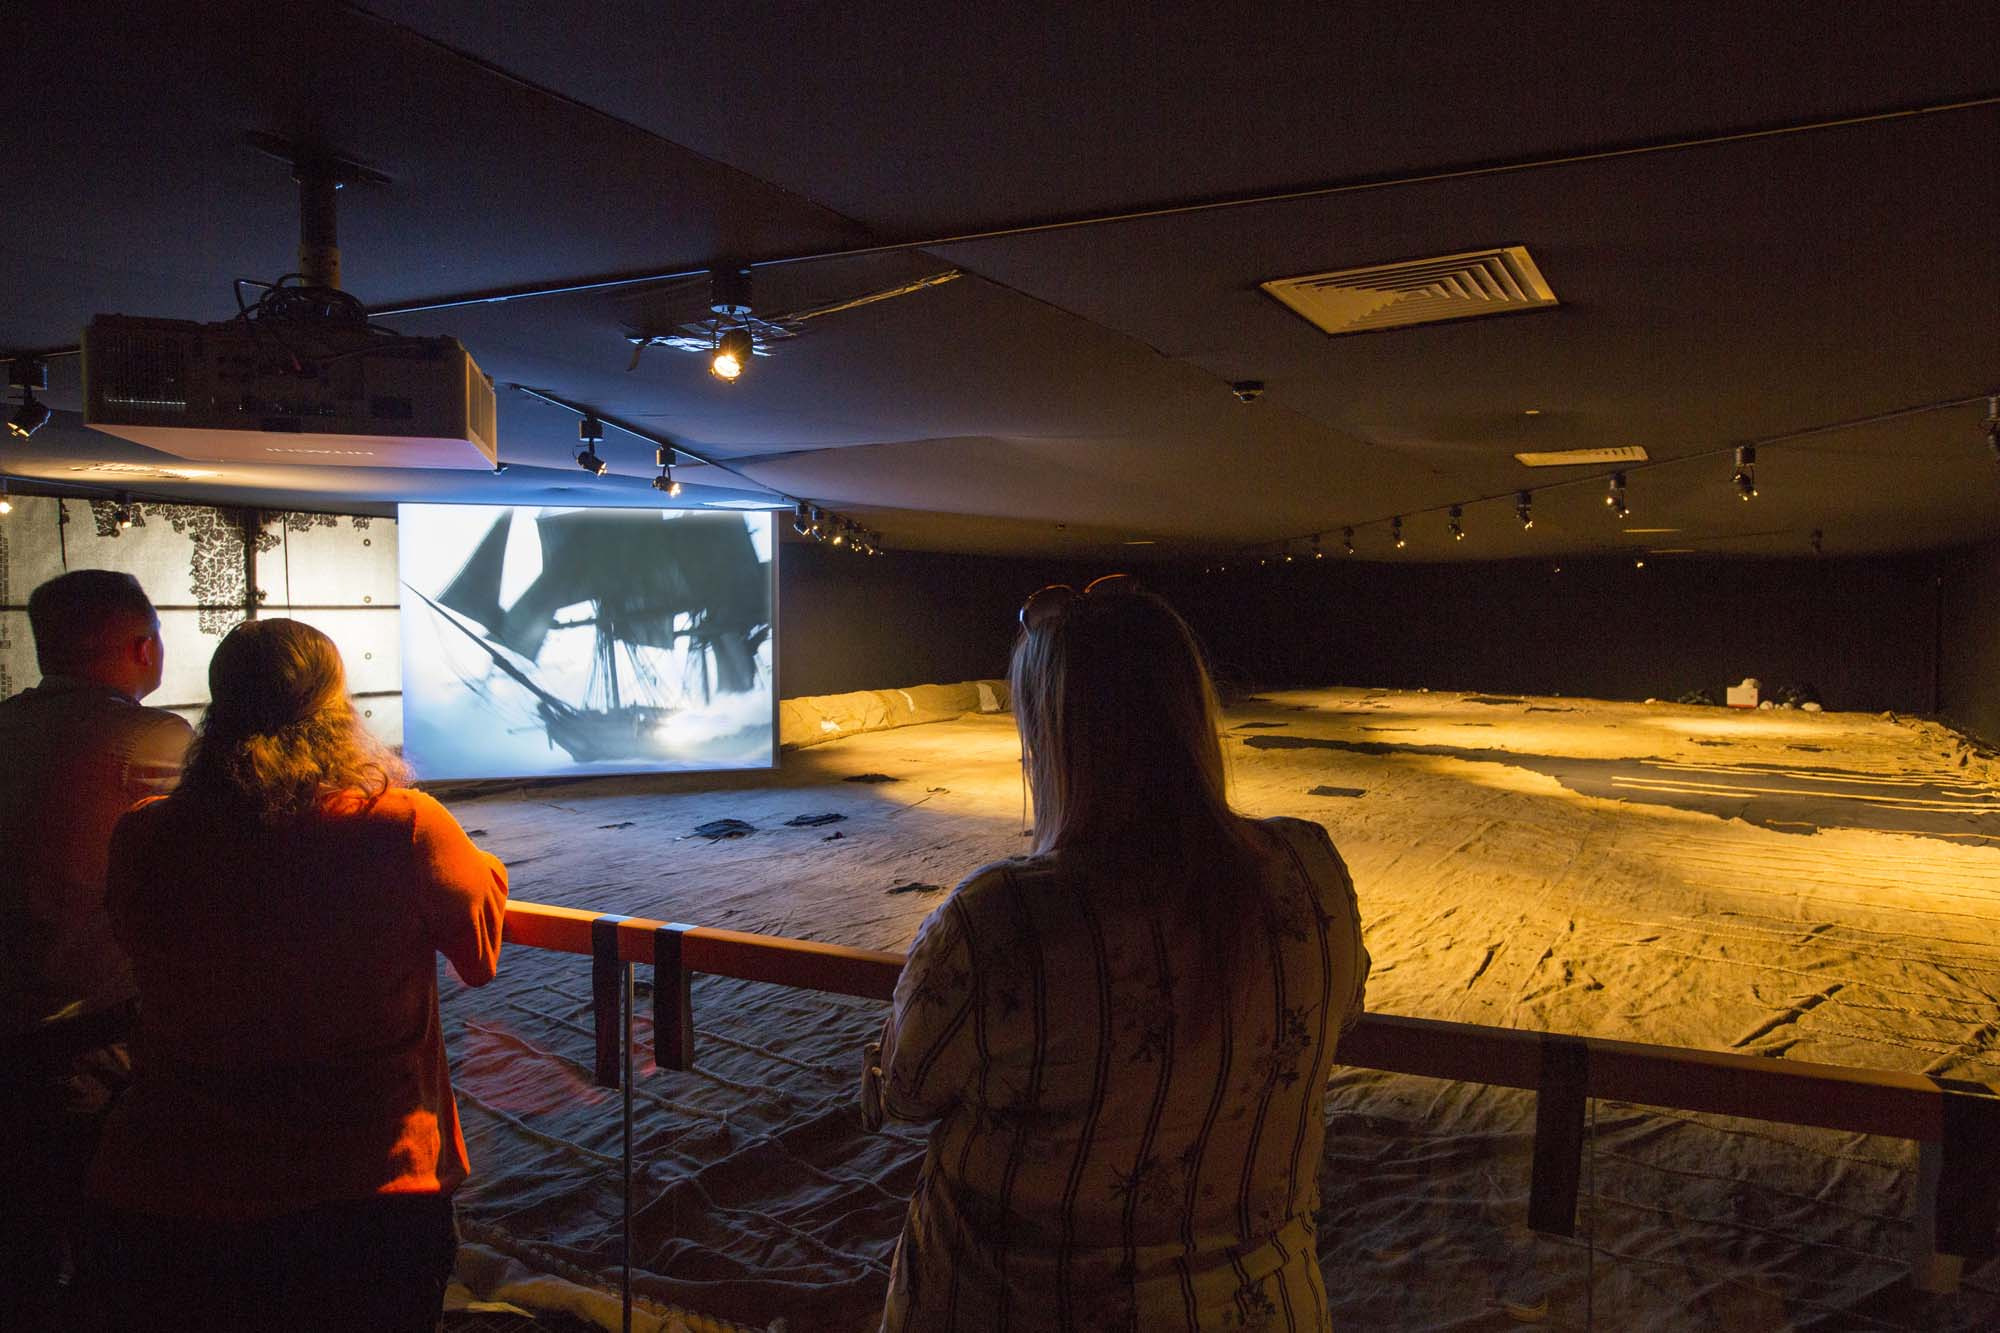 a photo of people looking across a room with a large sail laid out across it and a video screen showing films about sailing ships